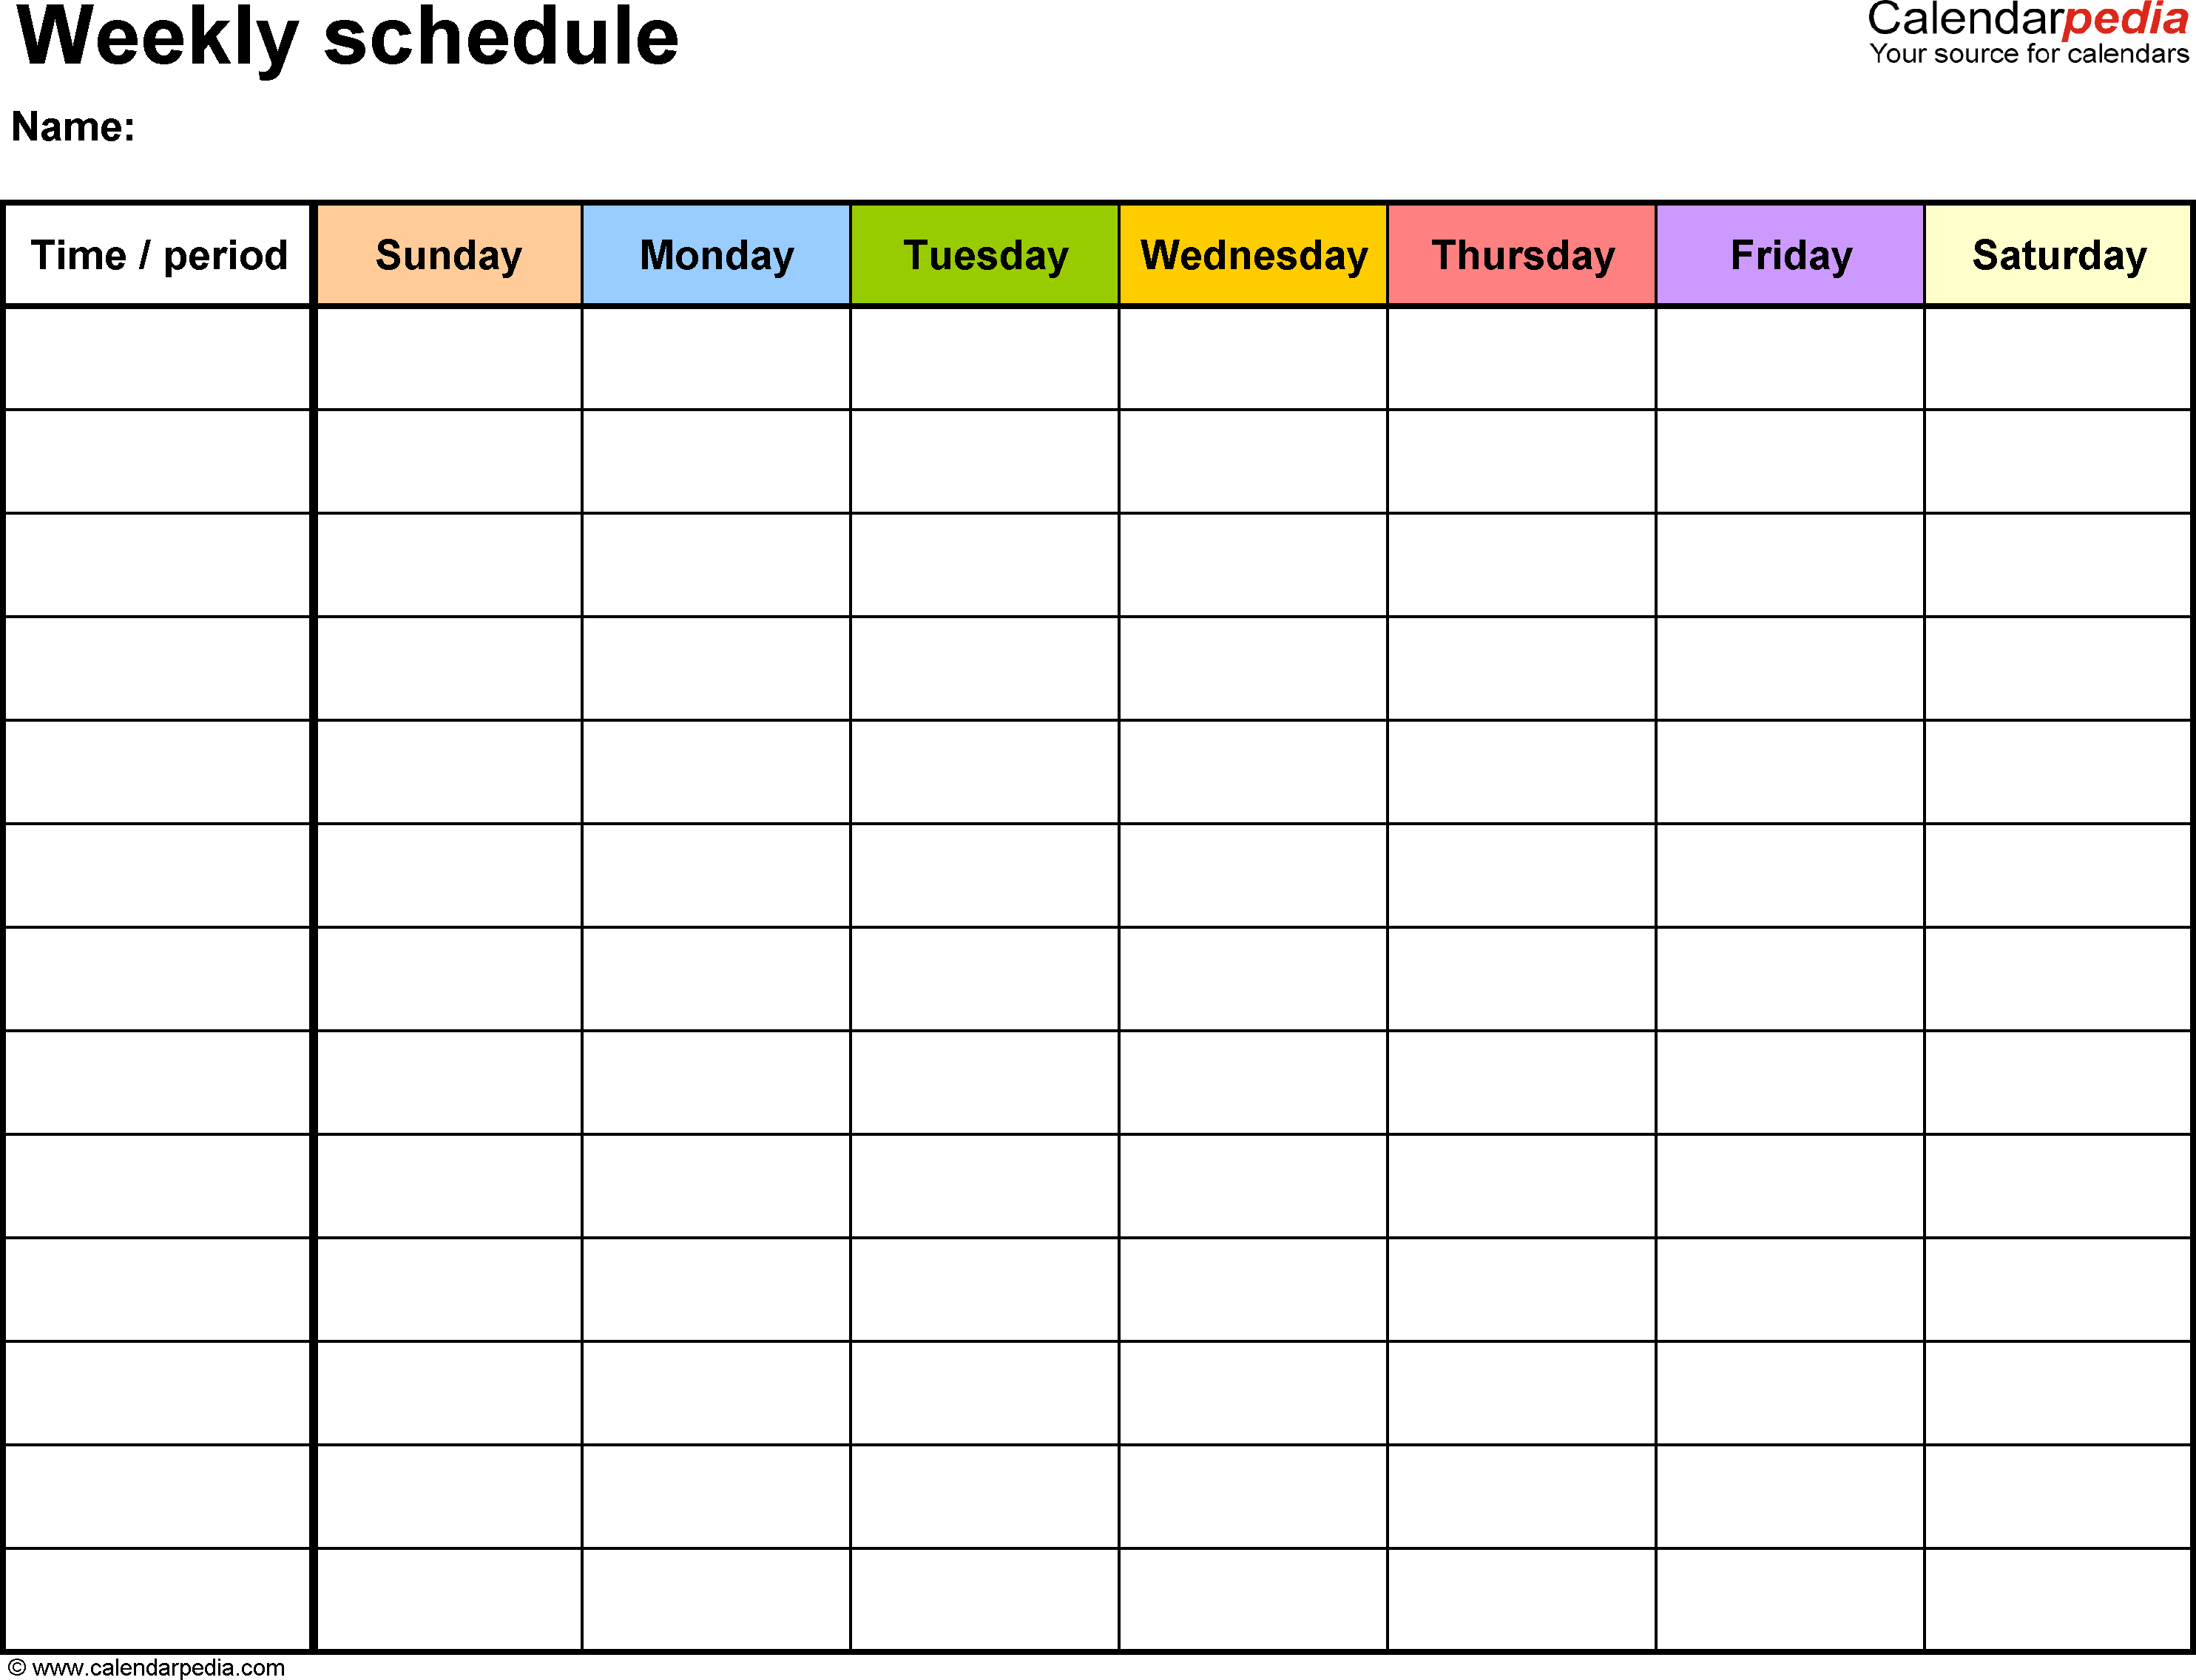 Weekly schedule template for word version 13 landscape 1 page weekly schedule template for word version 13 landscape 1 page sunday to saturday saigontimesfo